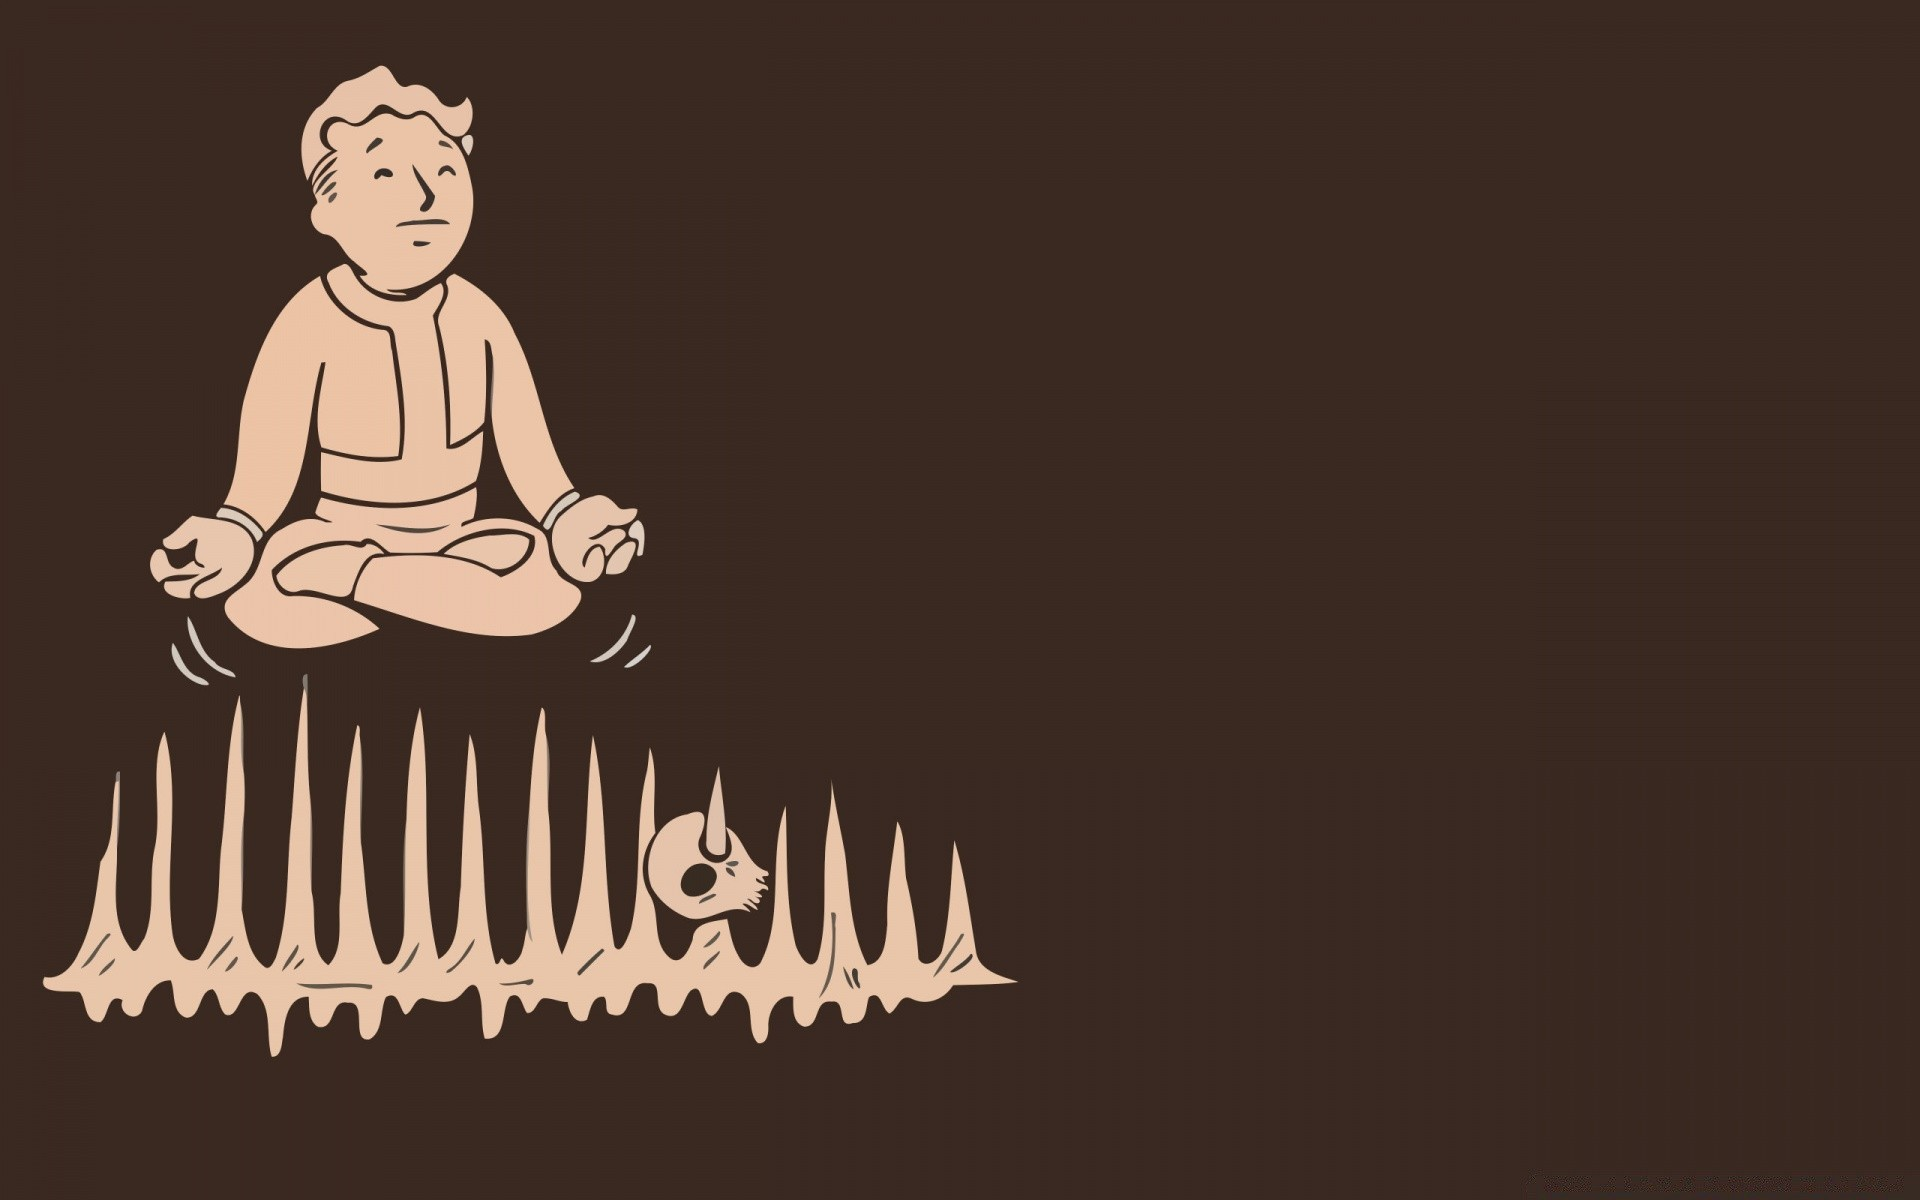 Vault Boy Fallout Free Wallpapers